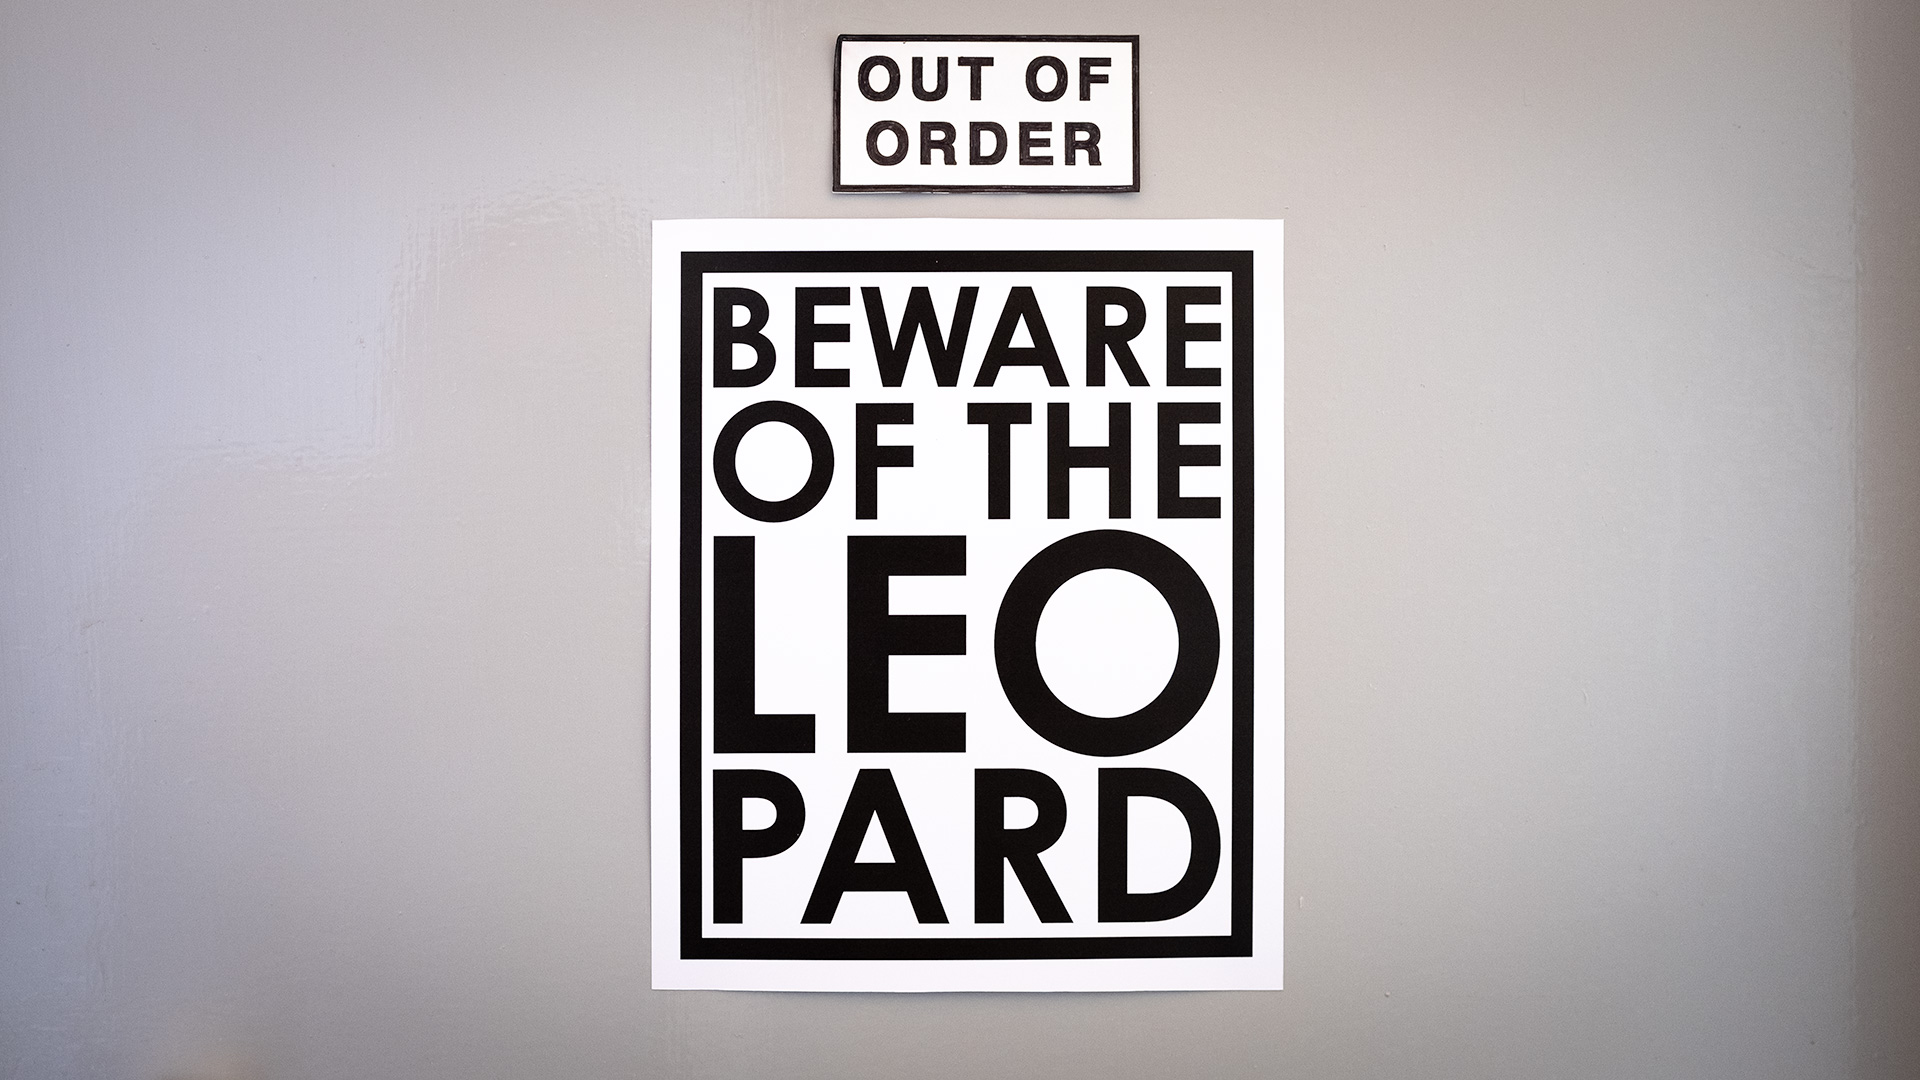 Beware of the Leopard poster